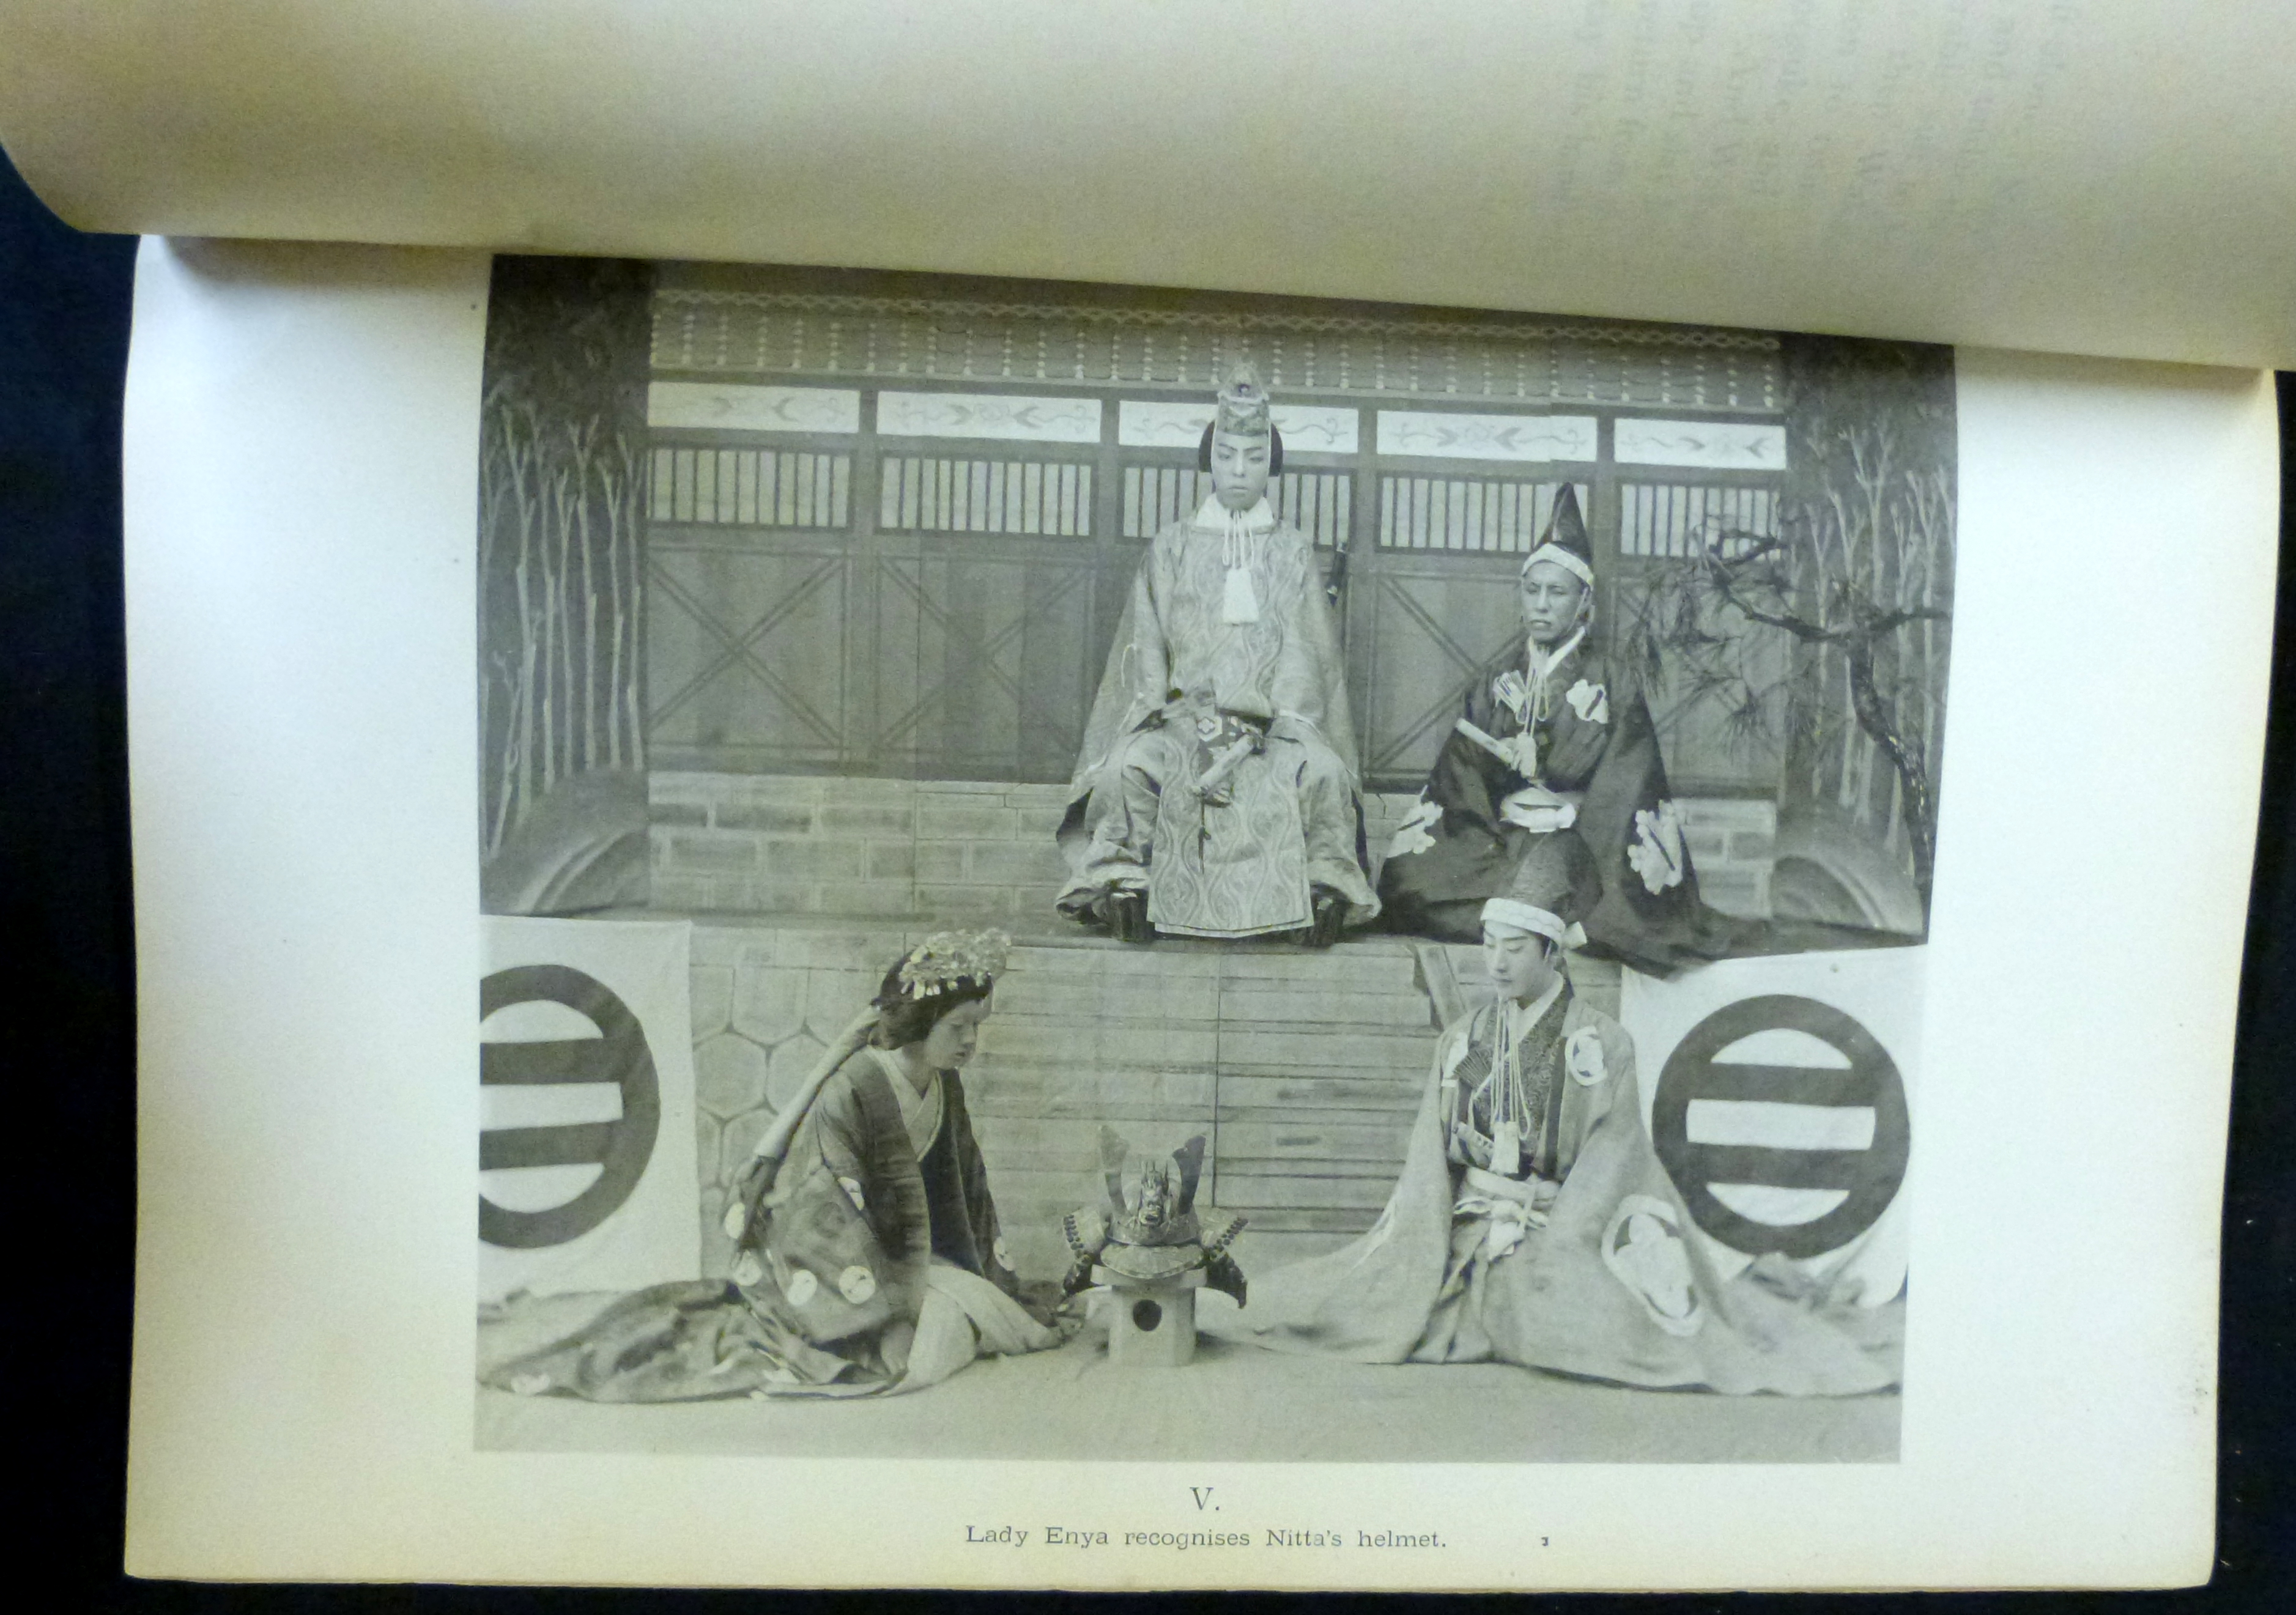 Lot 578 - K OGAWAY (PHOTOGRAPHER): SCENES FROM THE CHIUSHINGURA AND THE STORY OF THE FORTY-SEVEN RONIN,